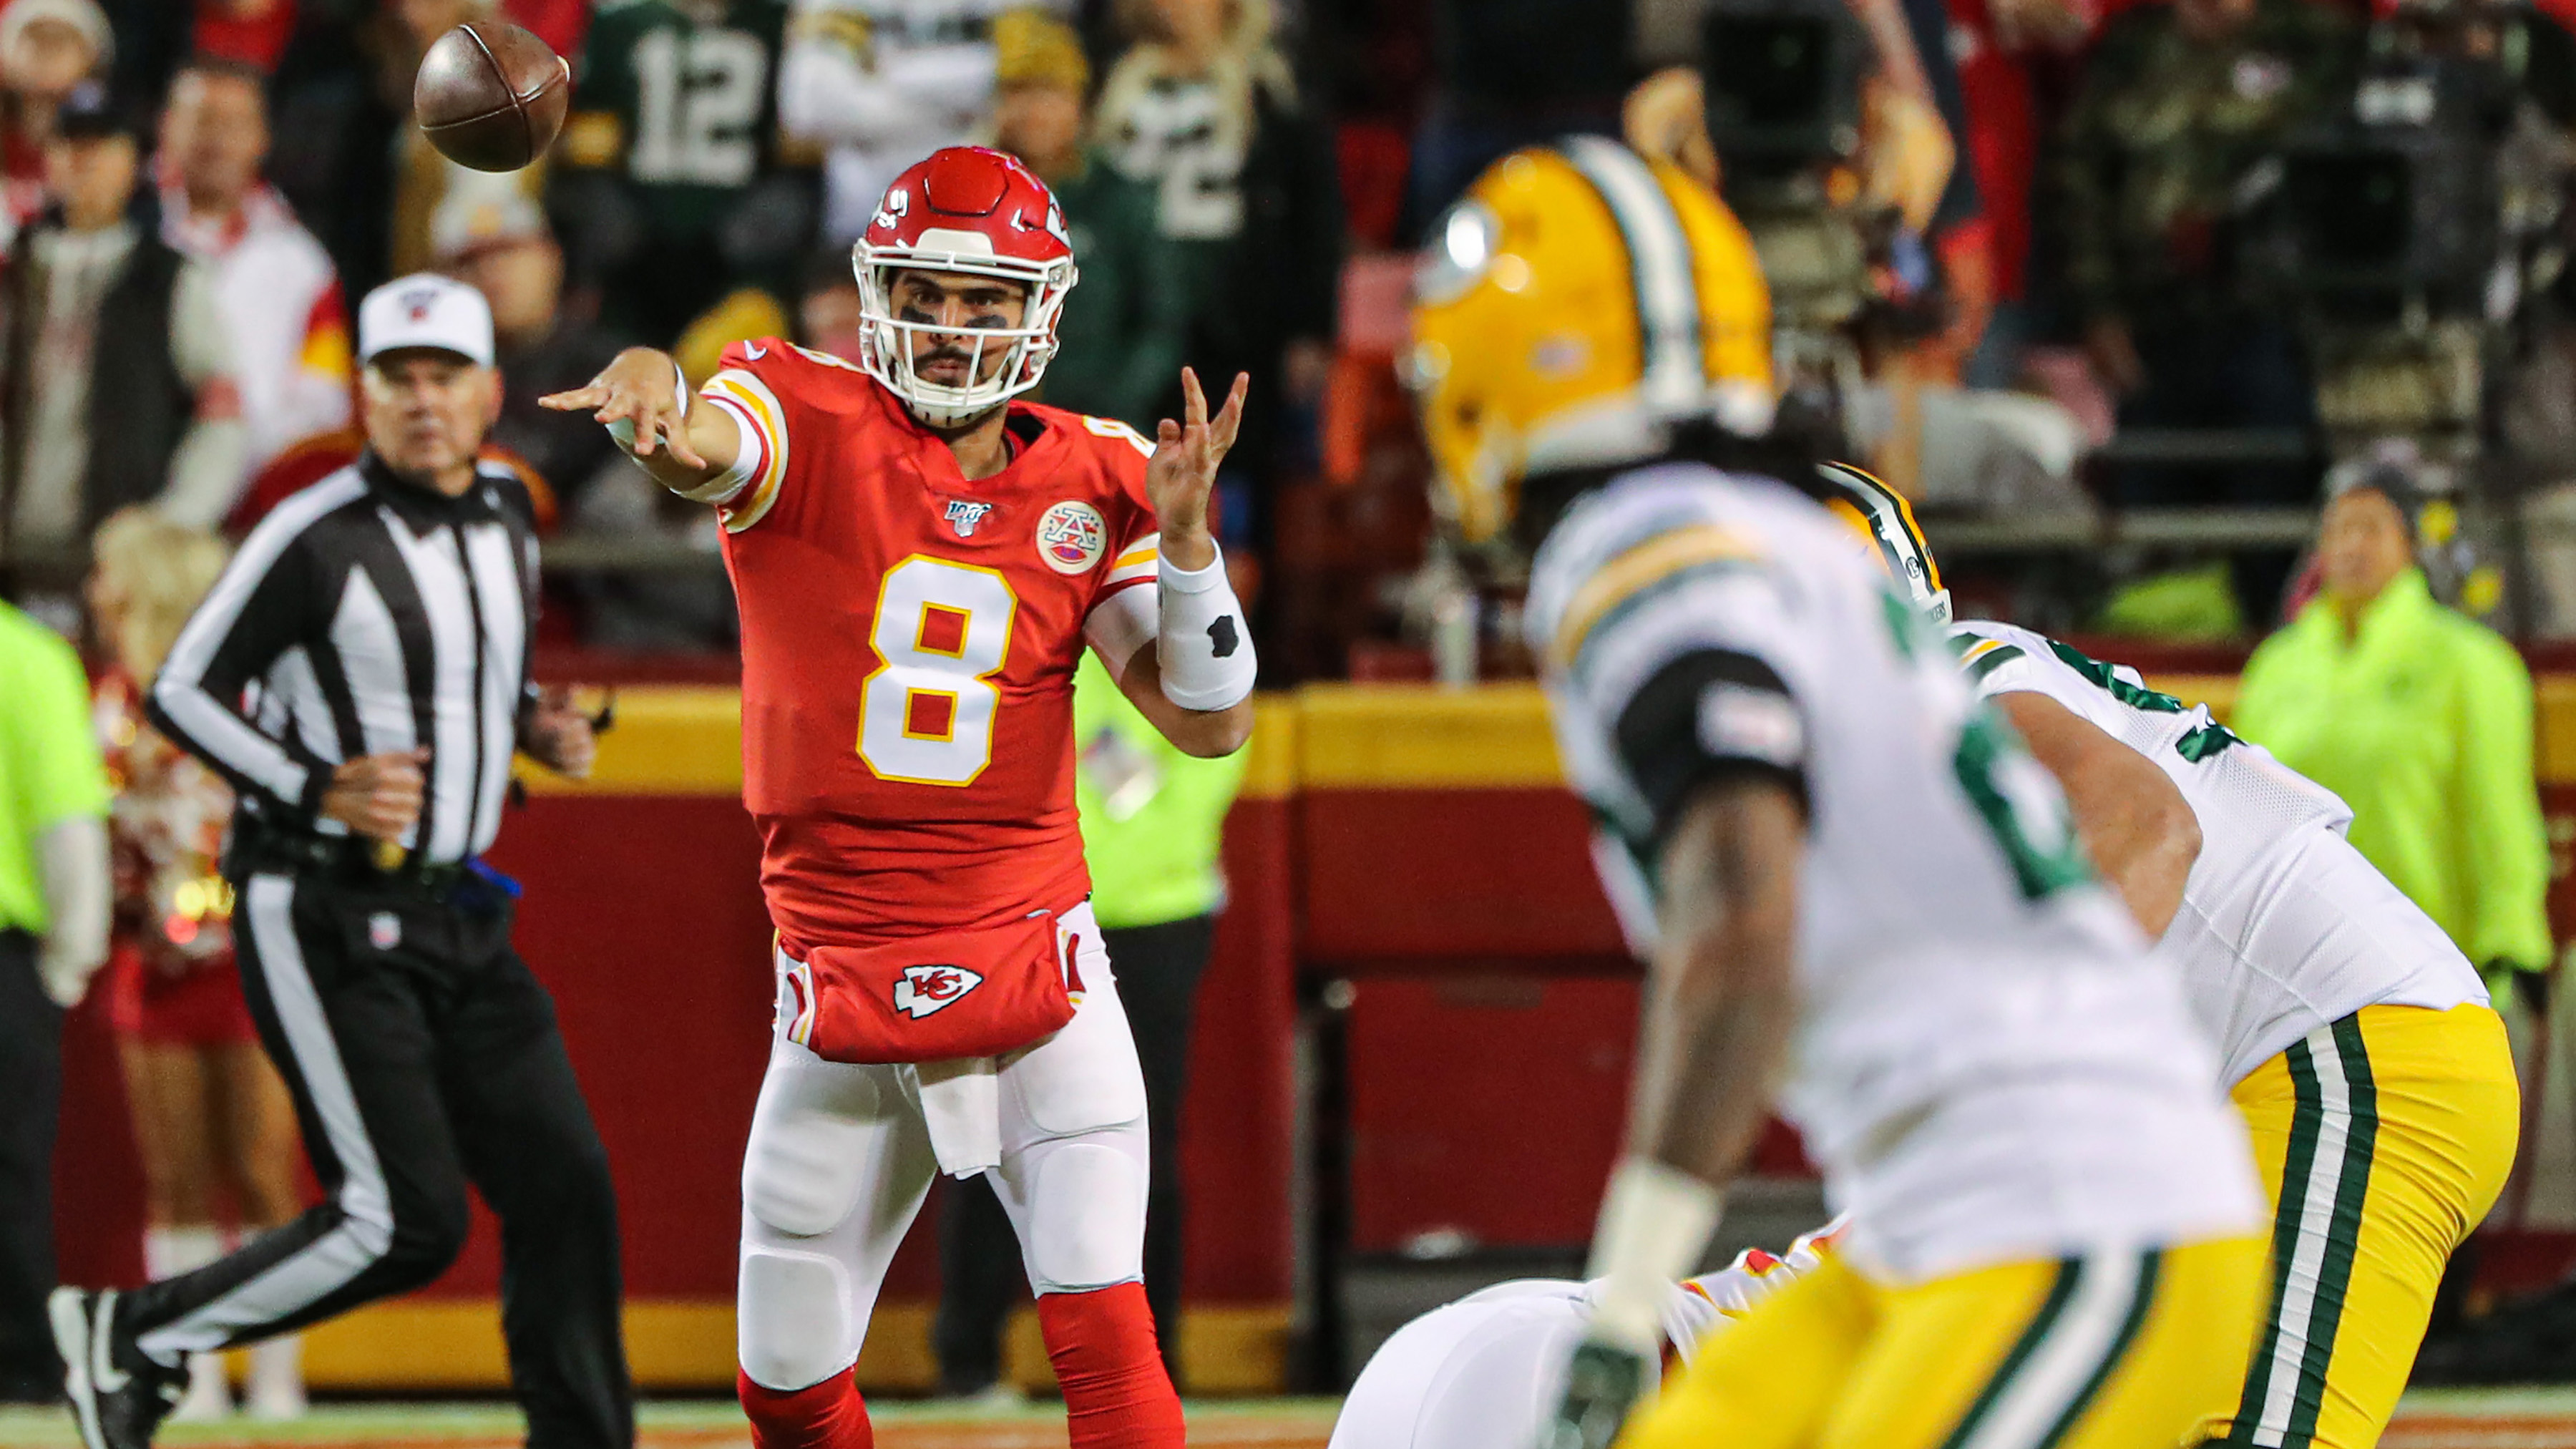 Moore fills in capably, but Chiefs fall 31-24 to Packers